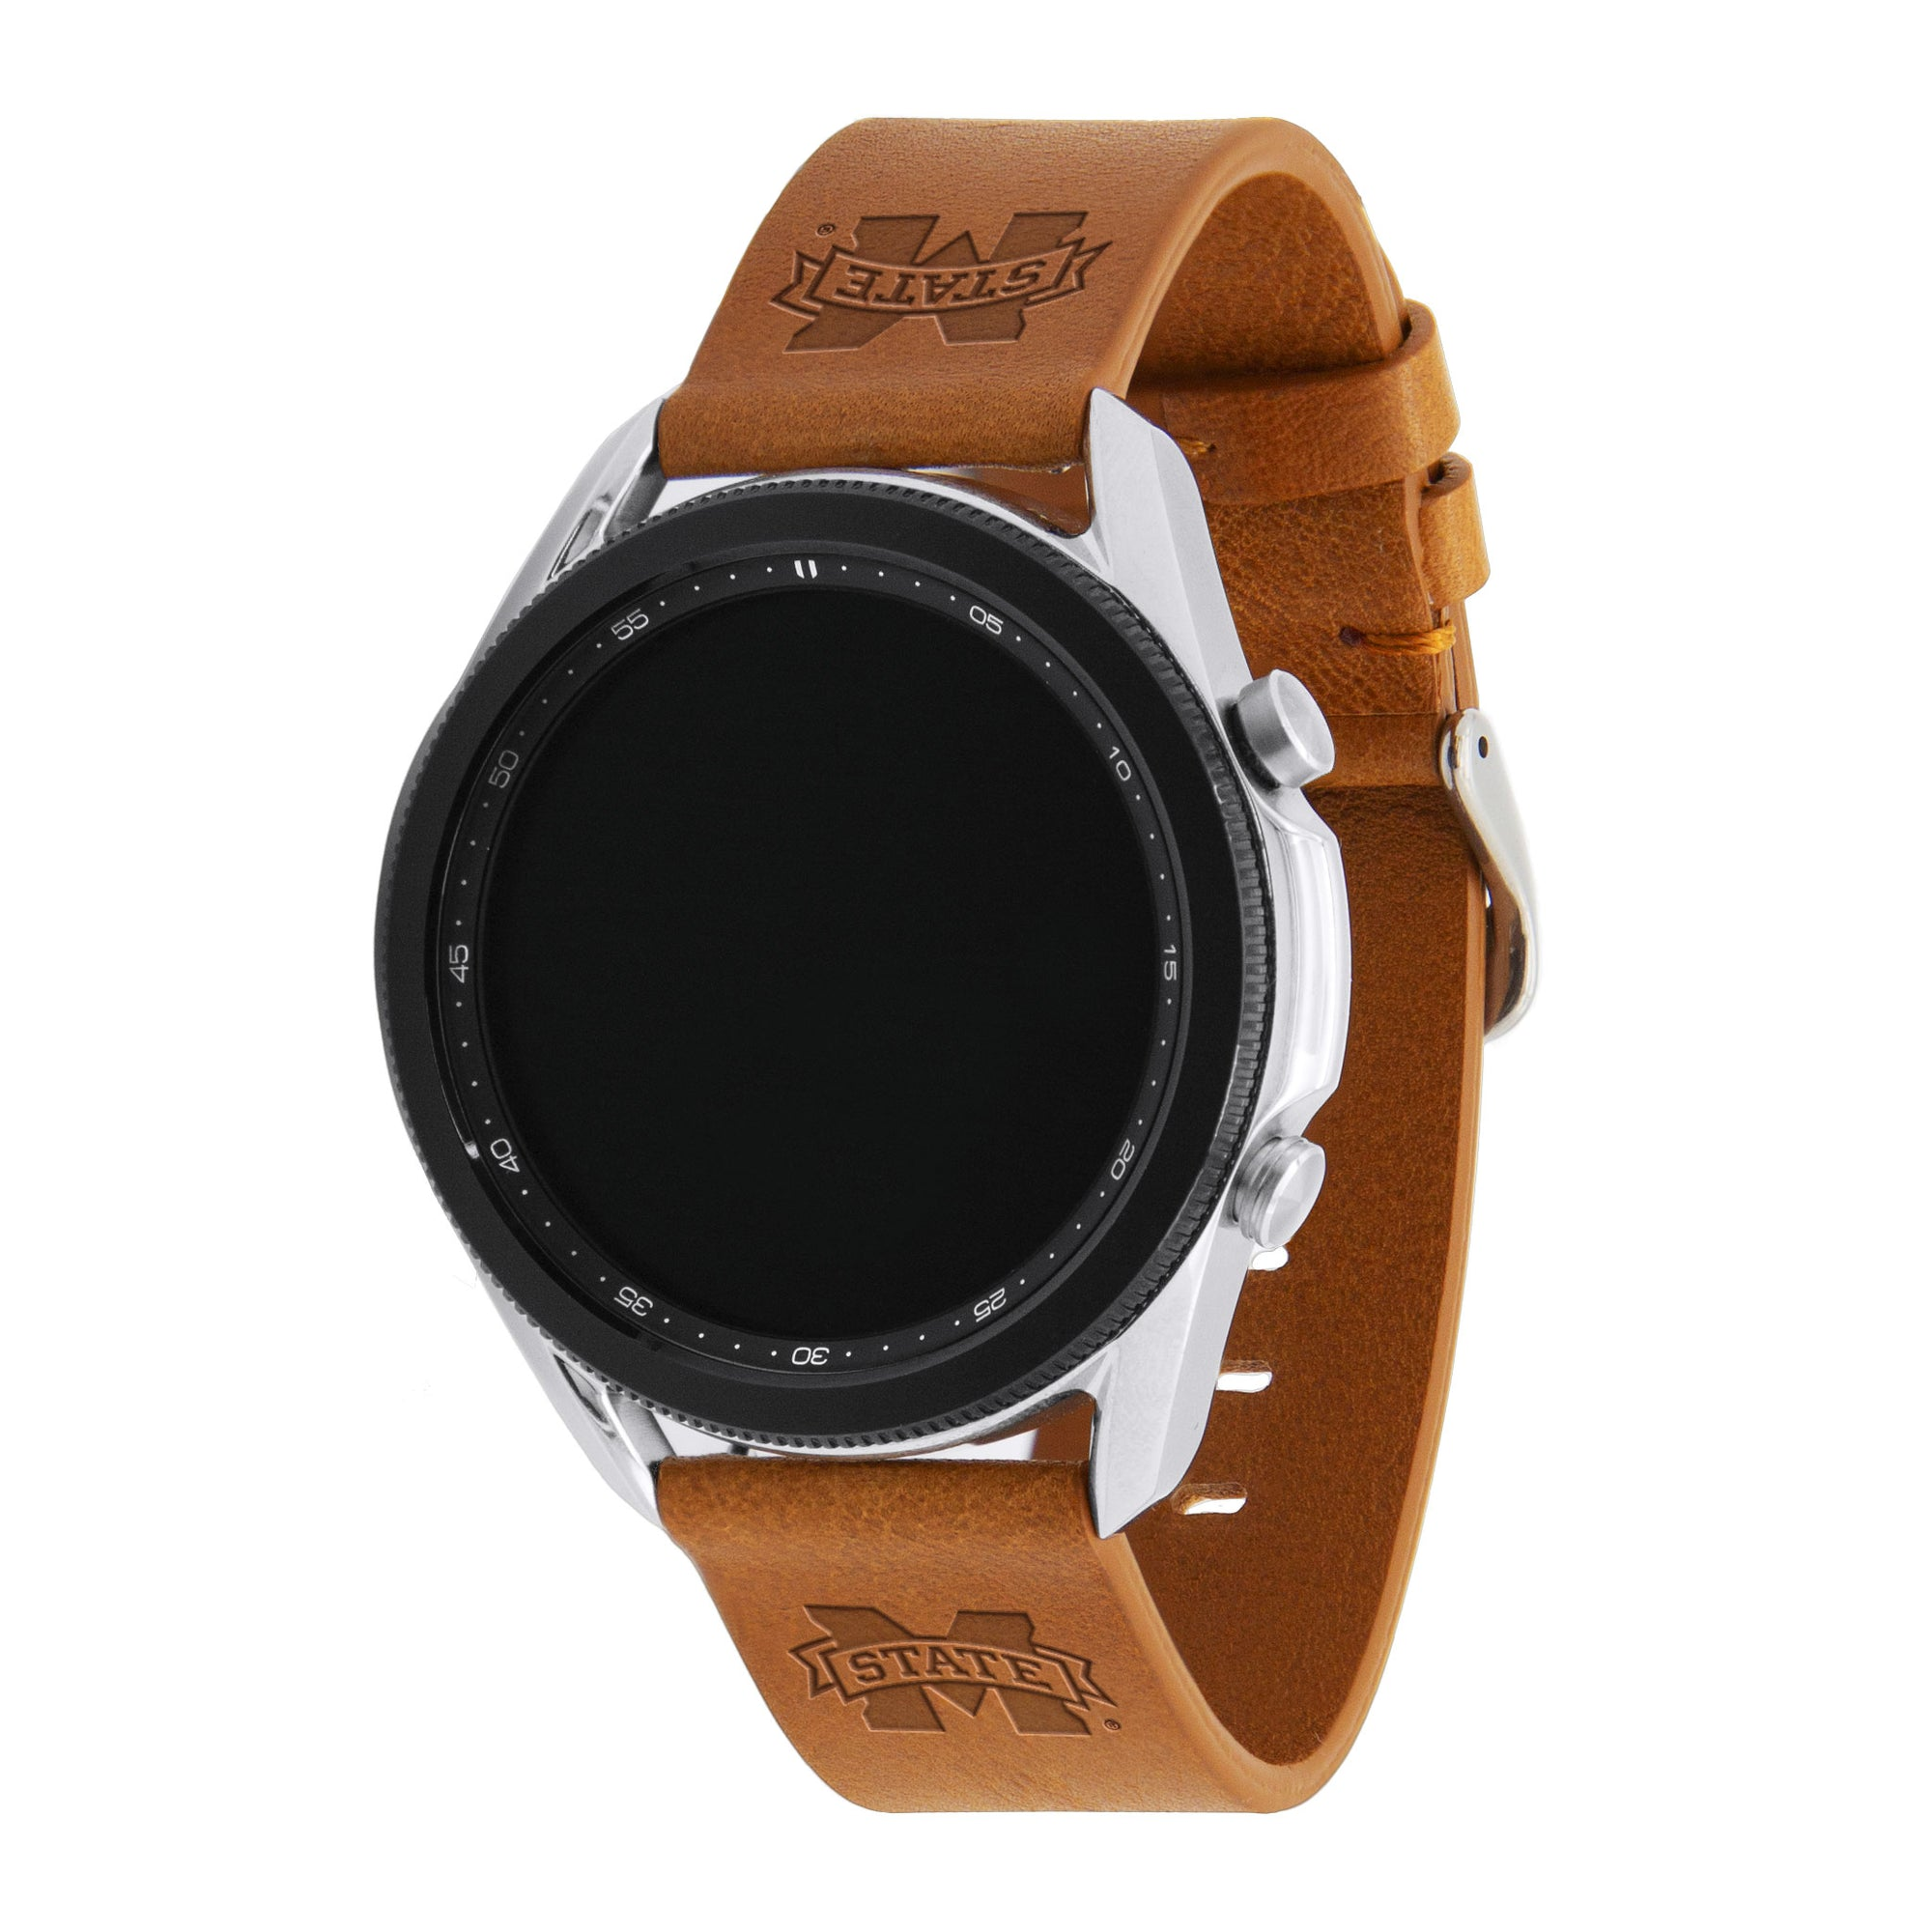 Mississippi State Bulldogs Quick Change Leather Watch Band - AffinityBands